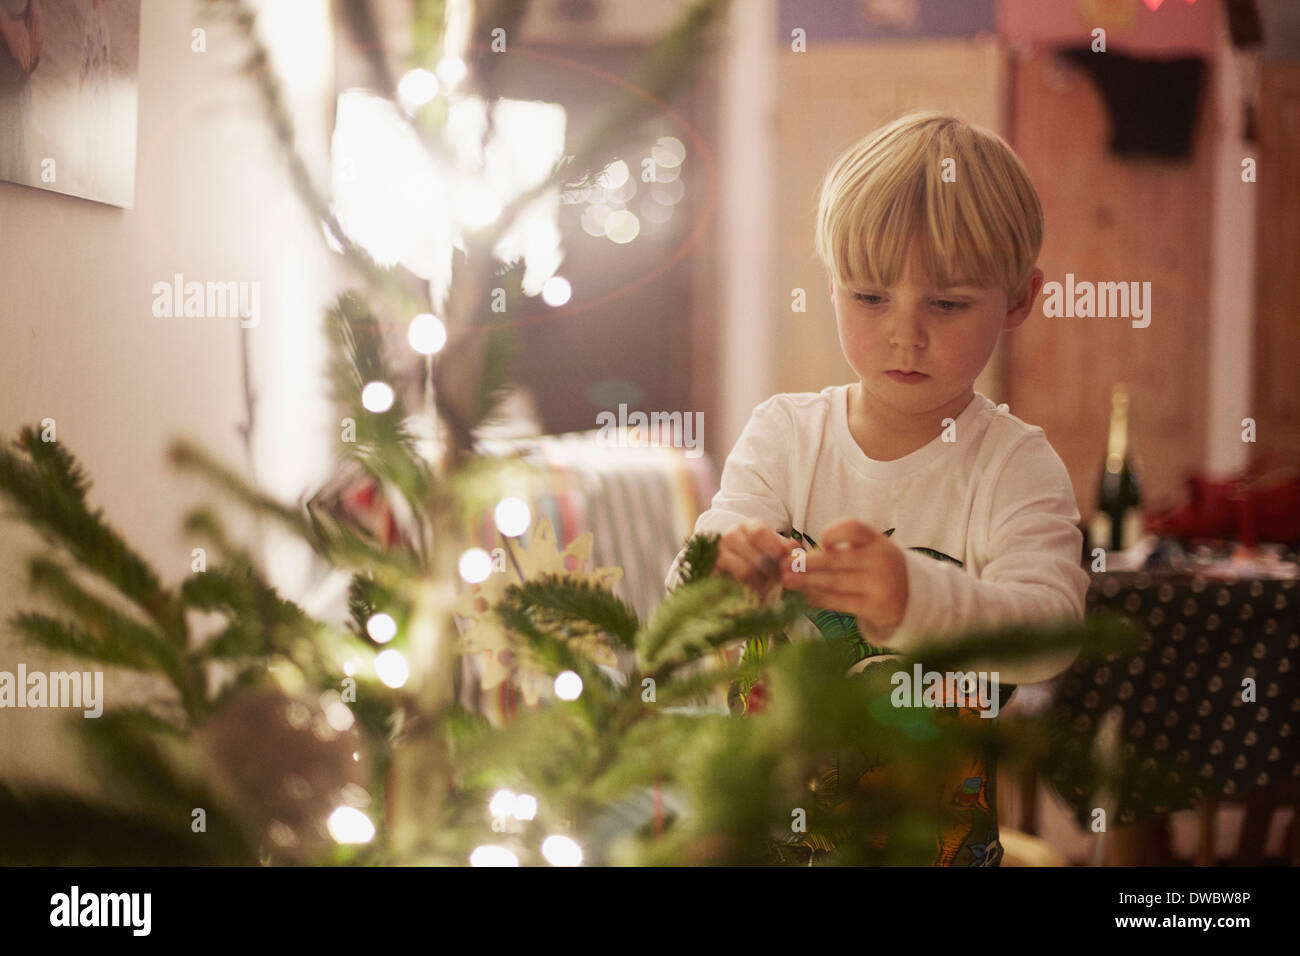 Young boy decorating Christmas Tree Photo Stock